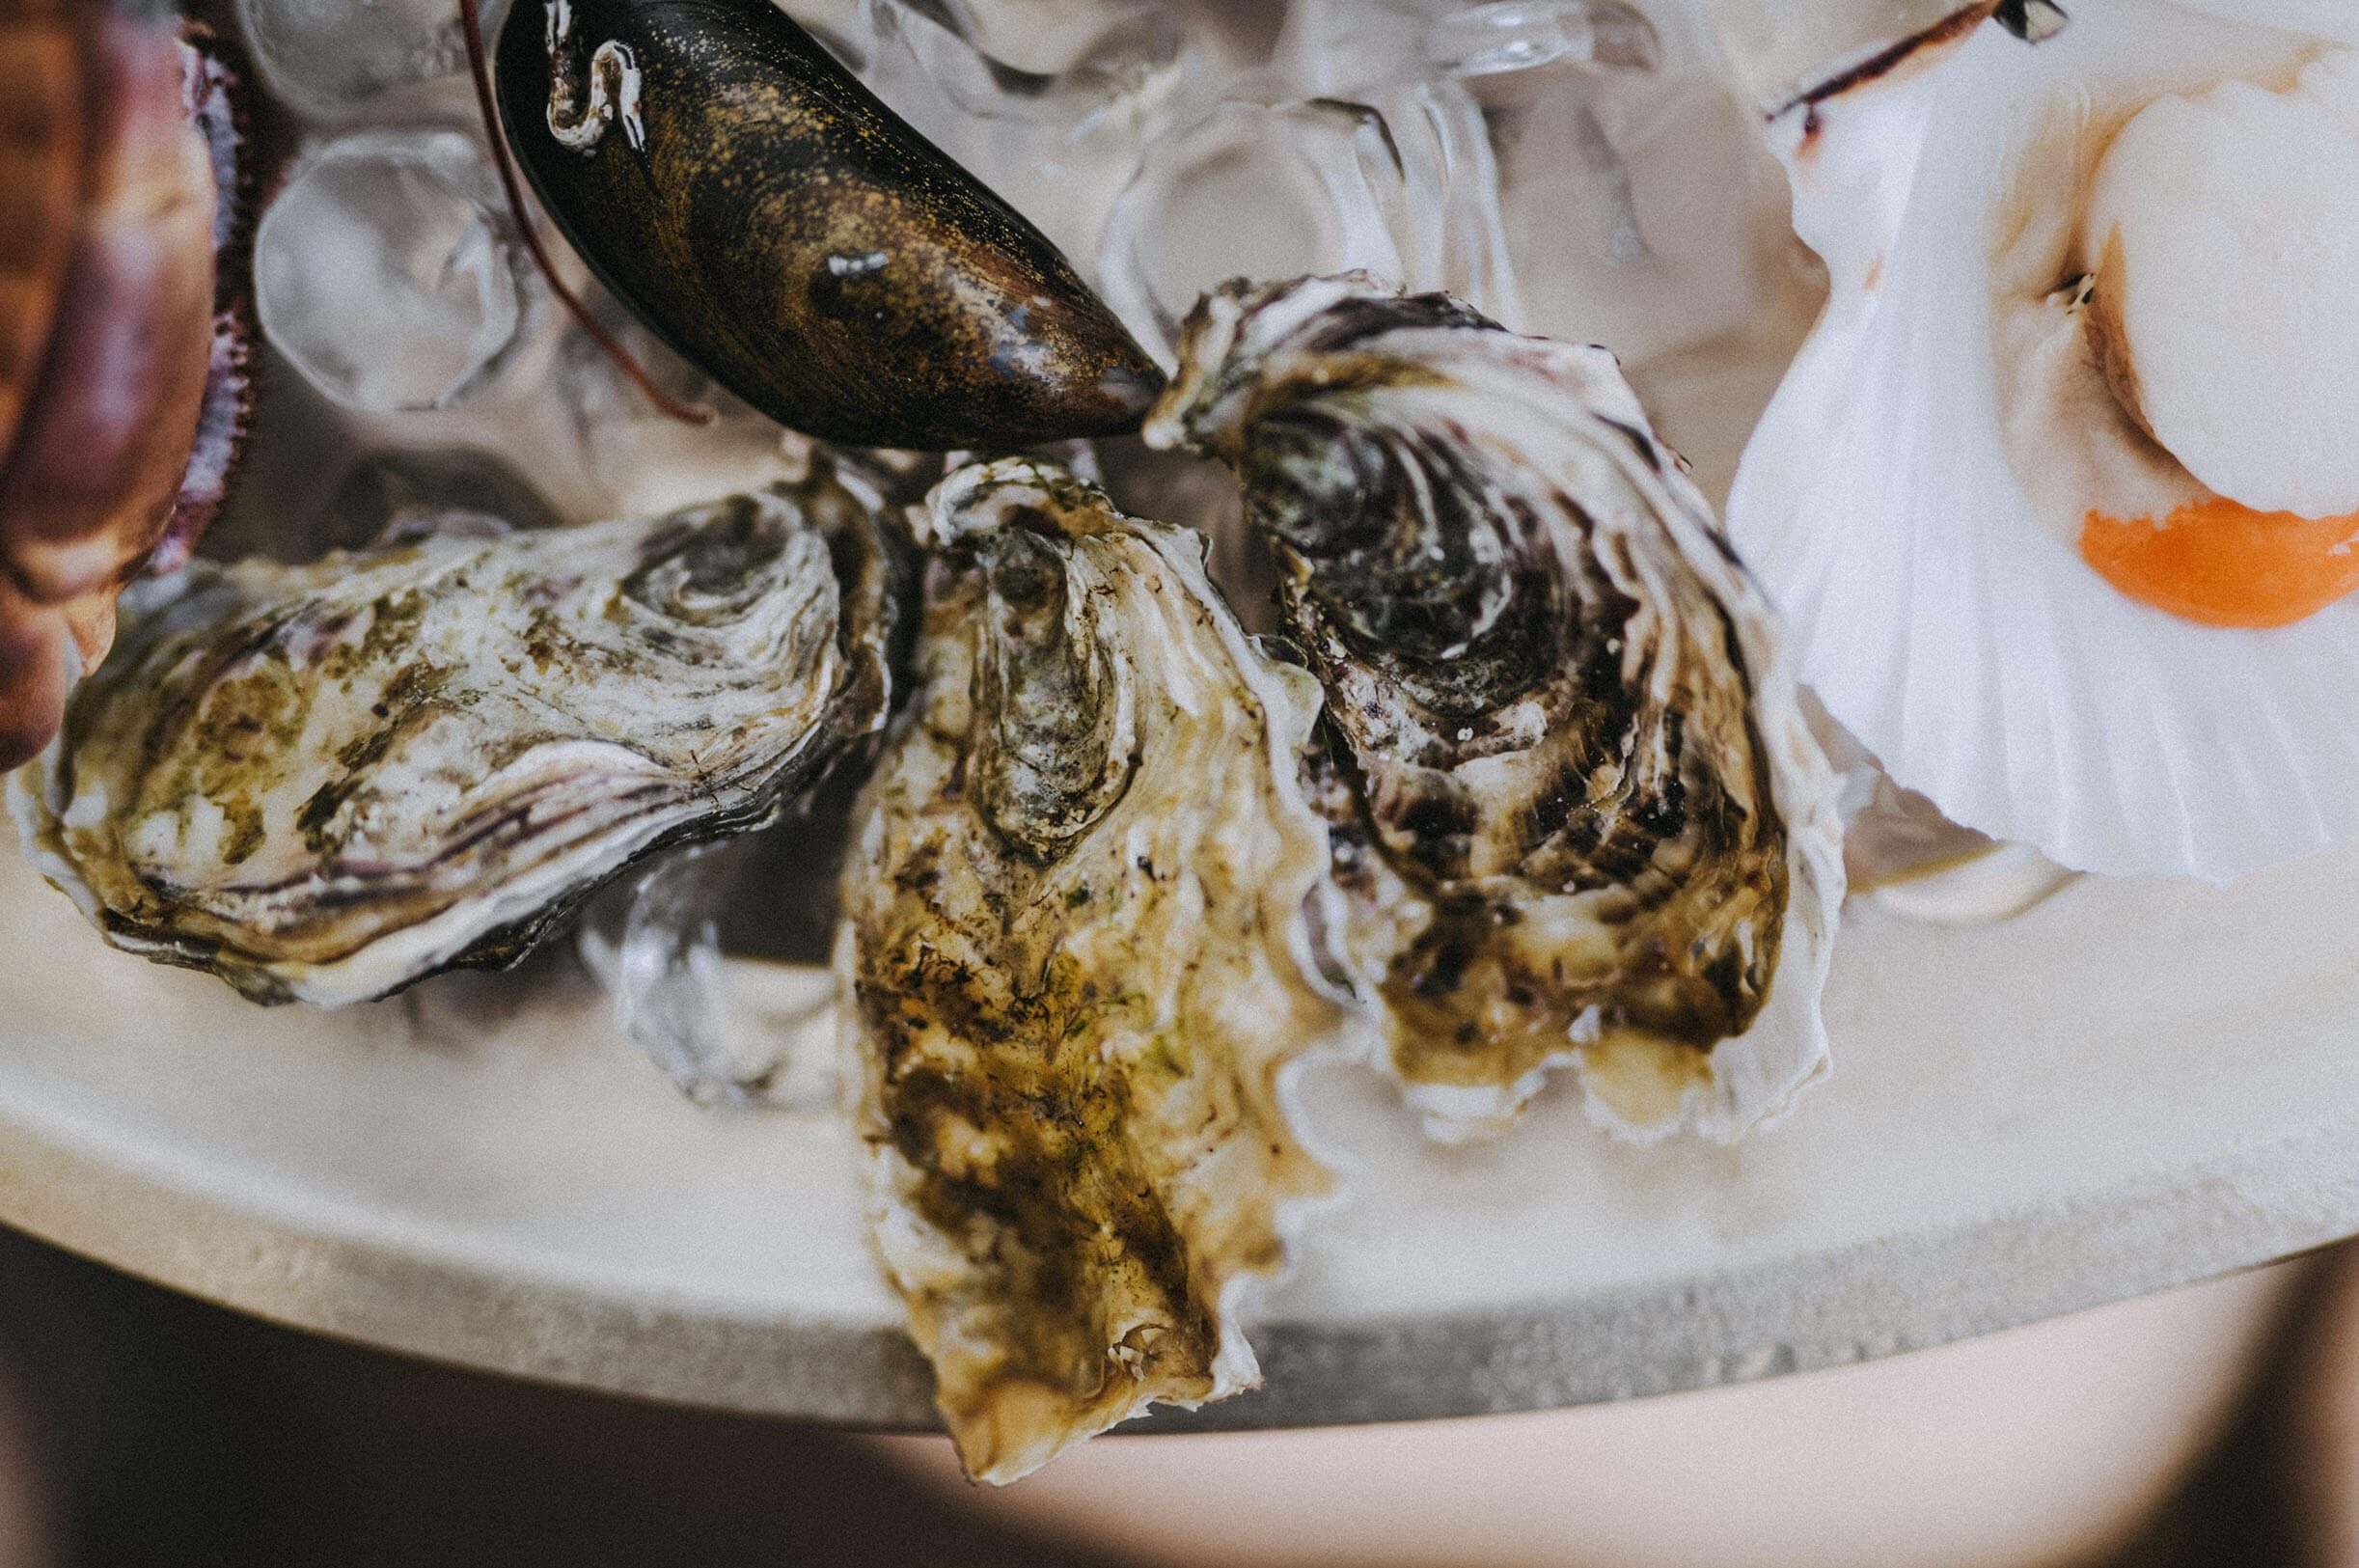 Mark Hix Oyster and Fish Truck A35 Morcombelake